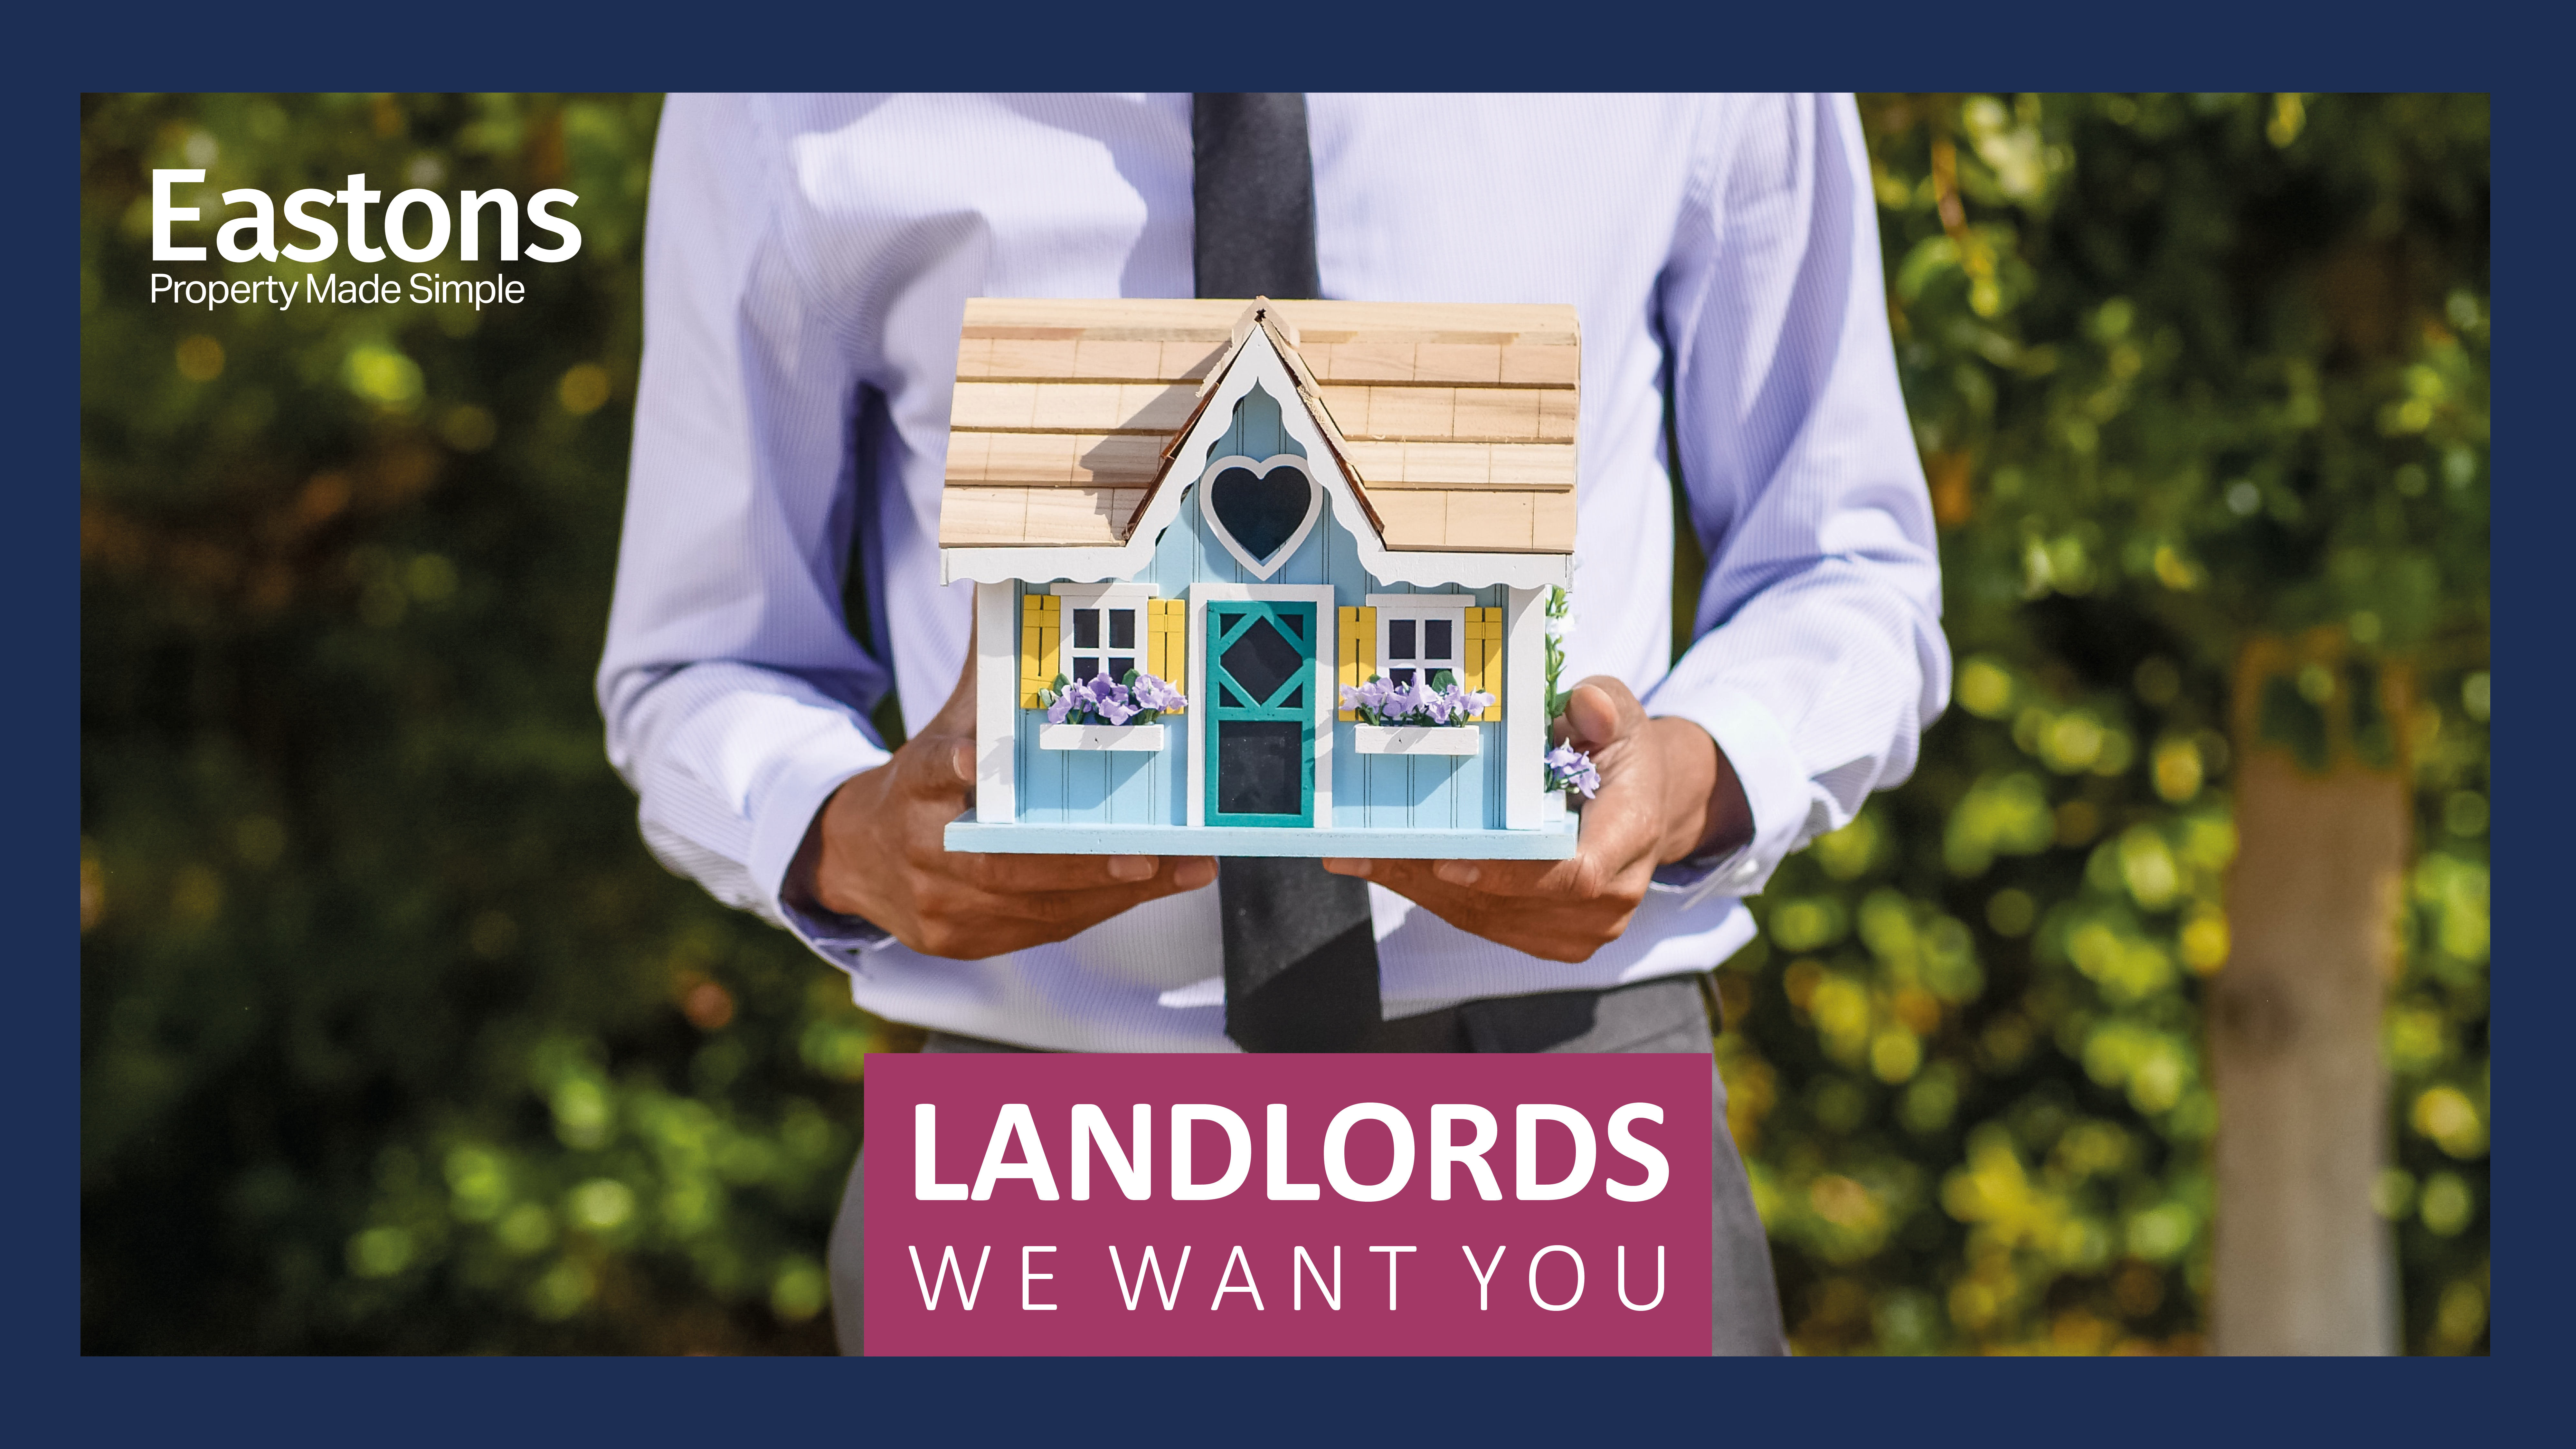 eastons_photo_advert_template_landlords_we_want_you